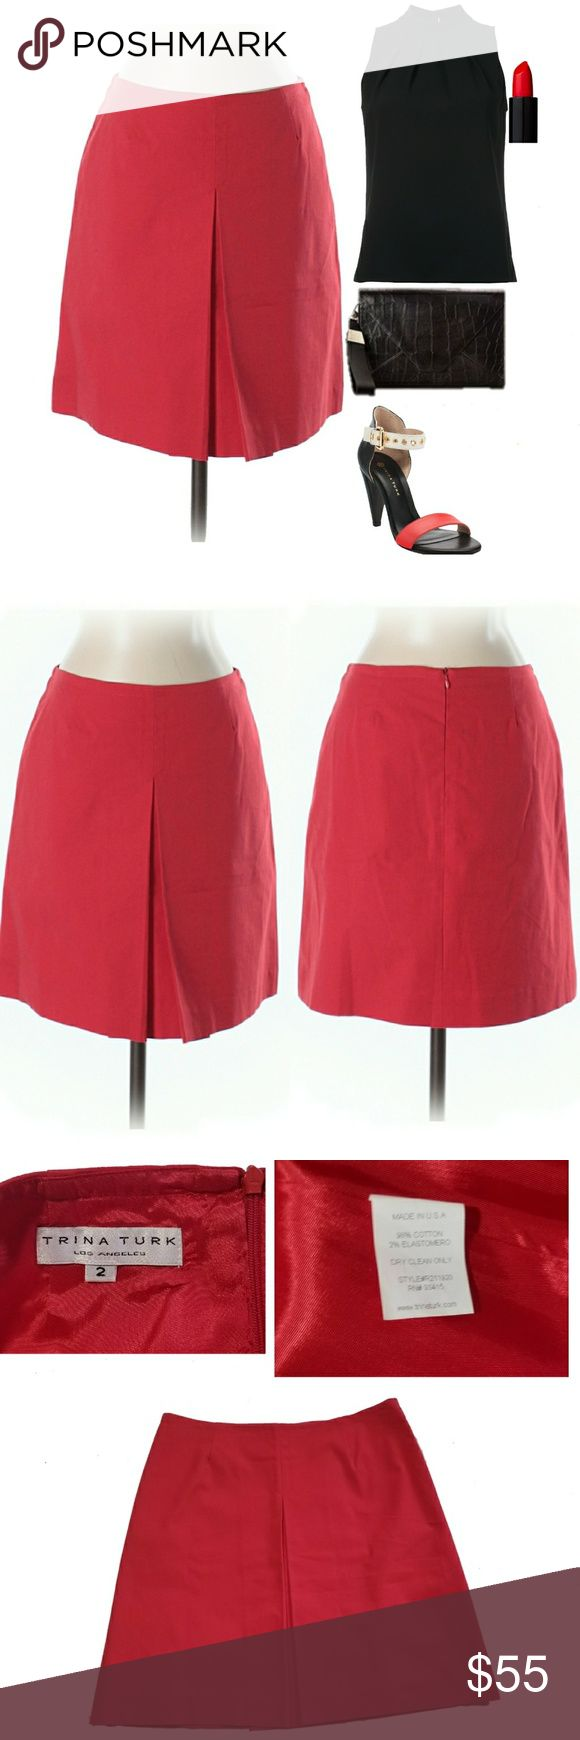 """New! Trina Turk Vibrant Red Skirt Approx 17"""" Length. Lovely, high quality mini skirt by Trina Turk. Beautiful design. Single front center pleat, back concealed zipper down center. Gorgeous skirt! Excellent condition. Offers welcome.     *I'm lucky that my buyers have all been amazing, but I video record all purchases before & during packaging ☺ Trina Turk Skirts"""